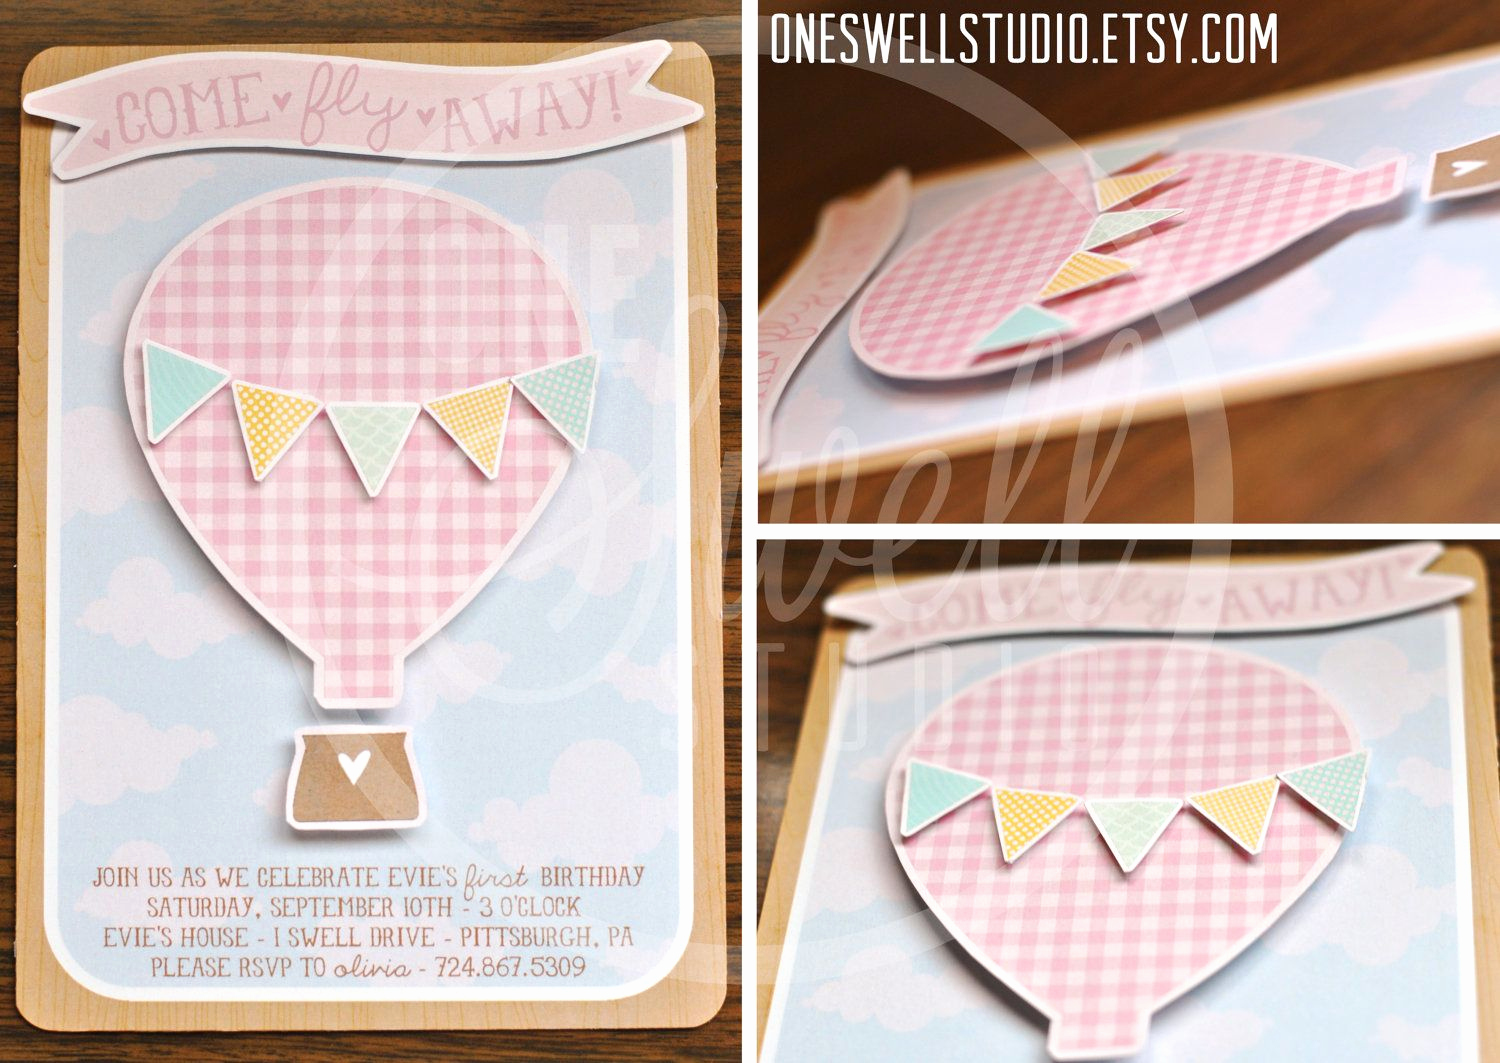 Hot Air Balloon Invitation New Three Dimensional Pop Up Hot Air Balloon Diy Printable